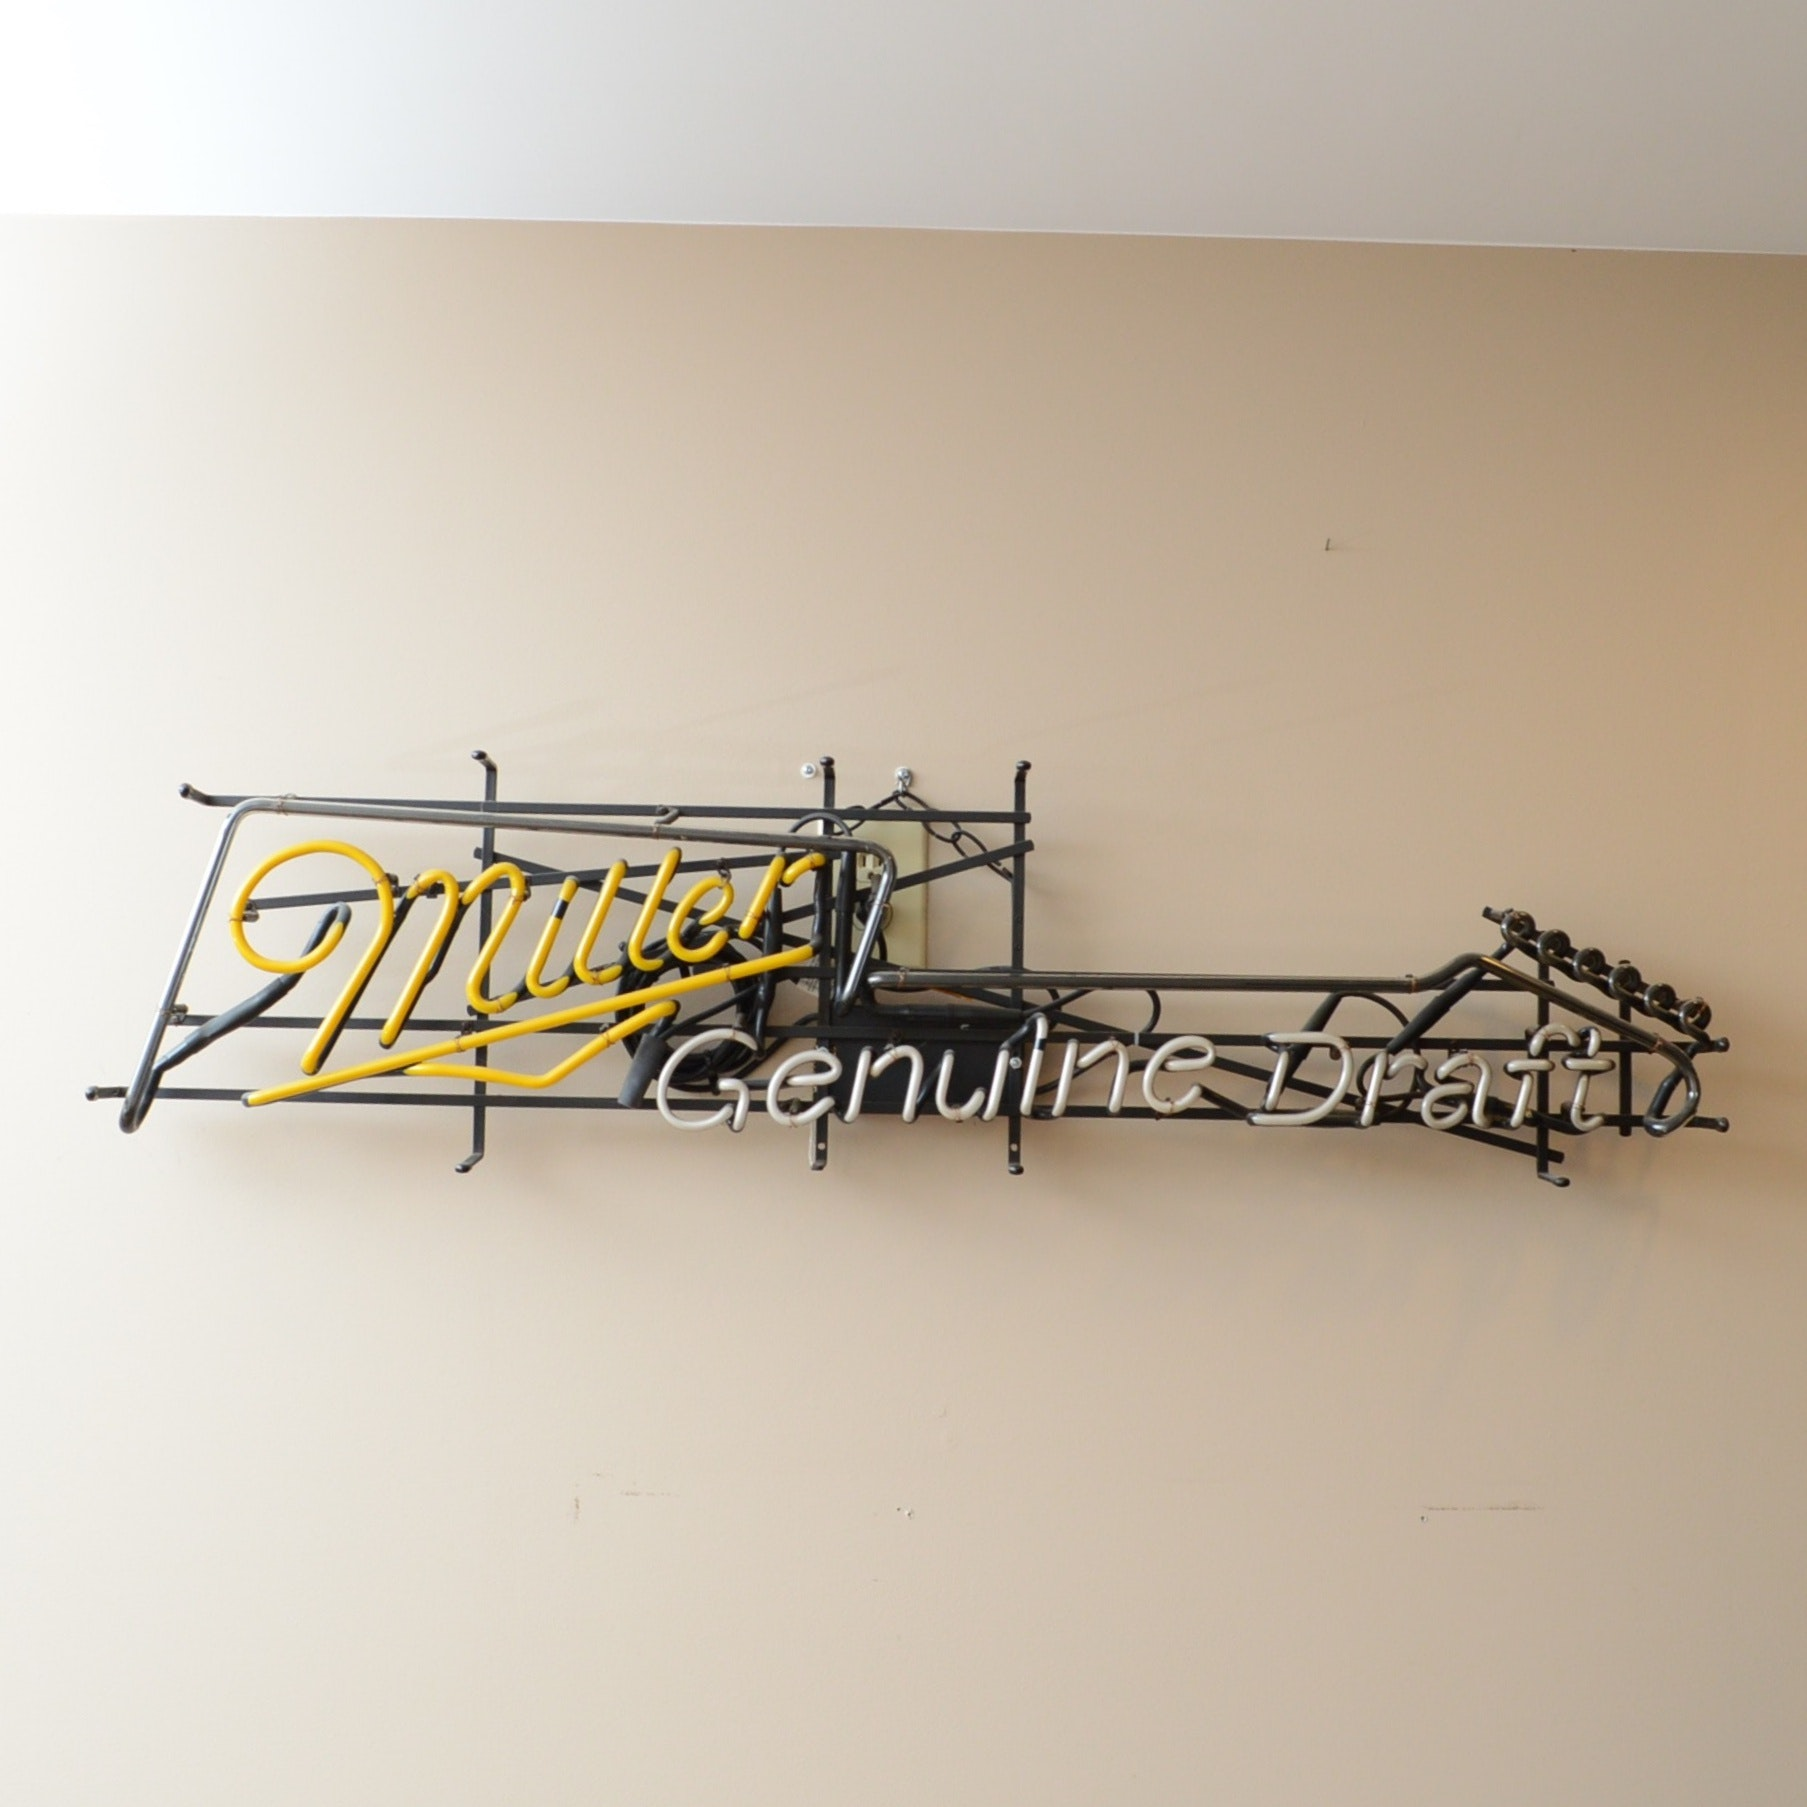 Miller Genuine Draft Neon Advertising Sign